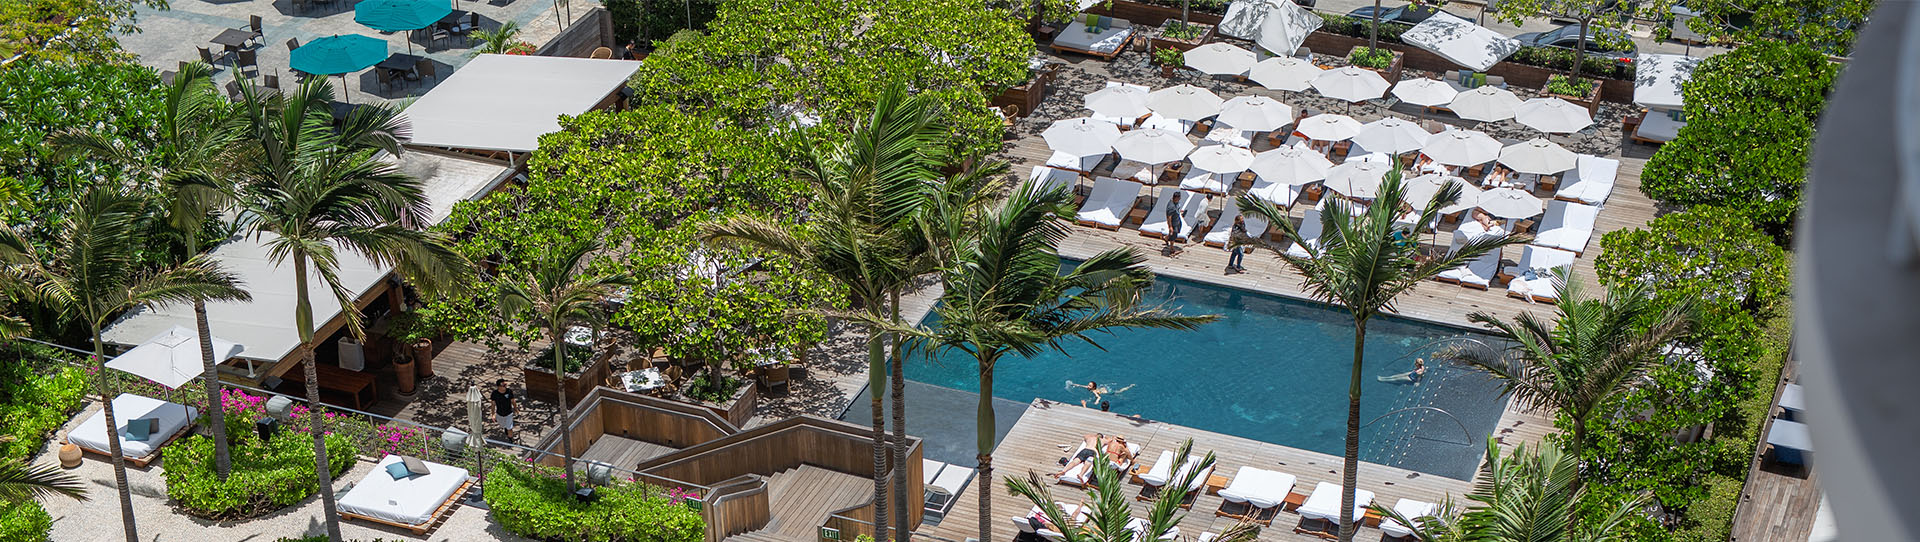 Aerial view of resort pool, lounge chairs and palm trees in Honolulu, HI